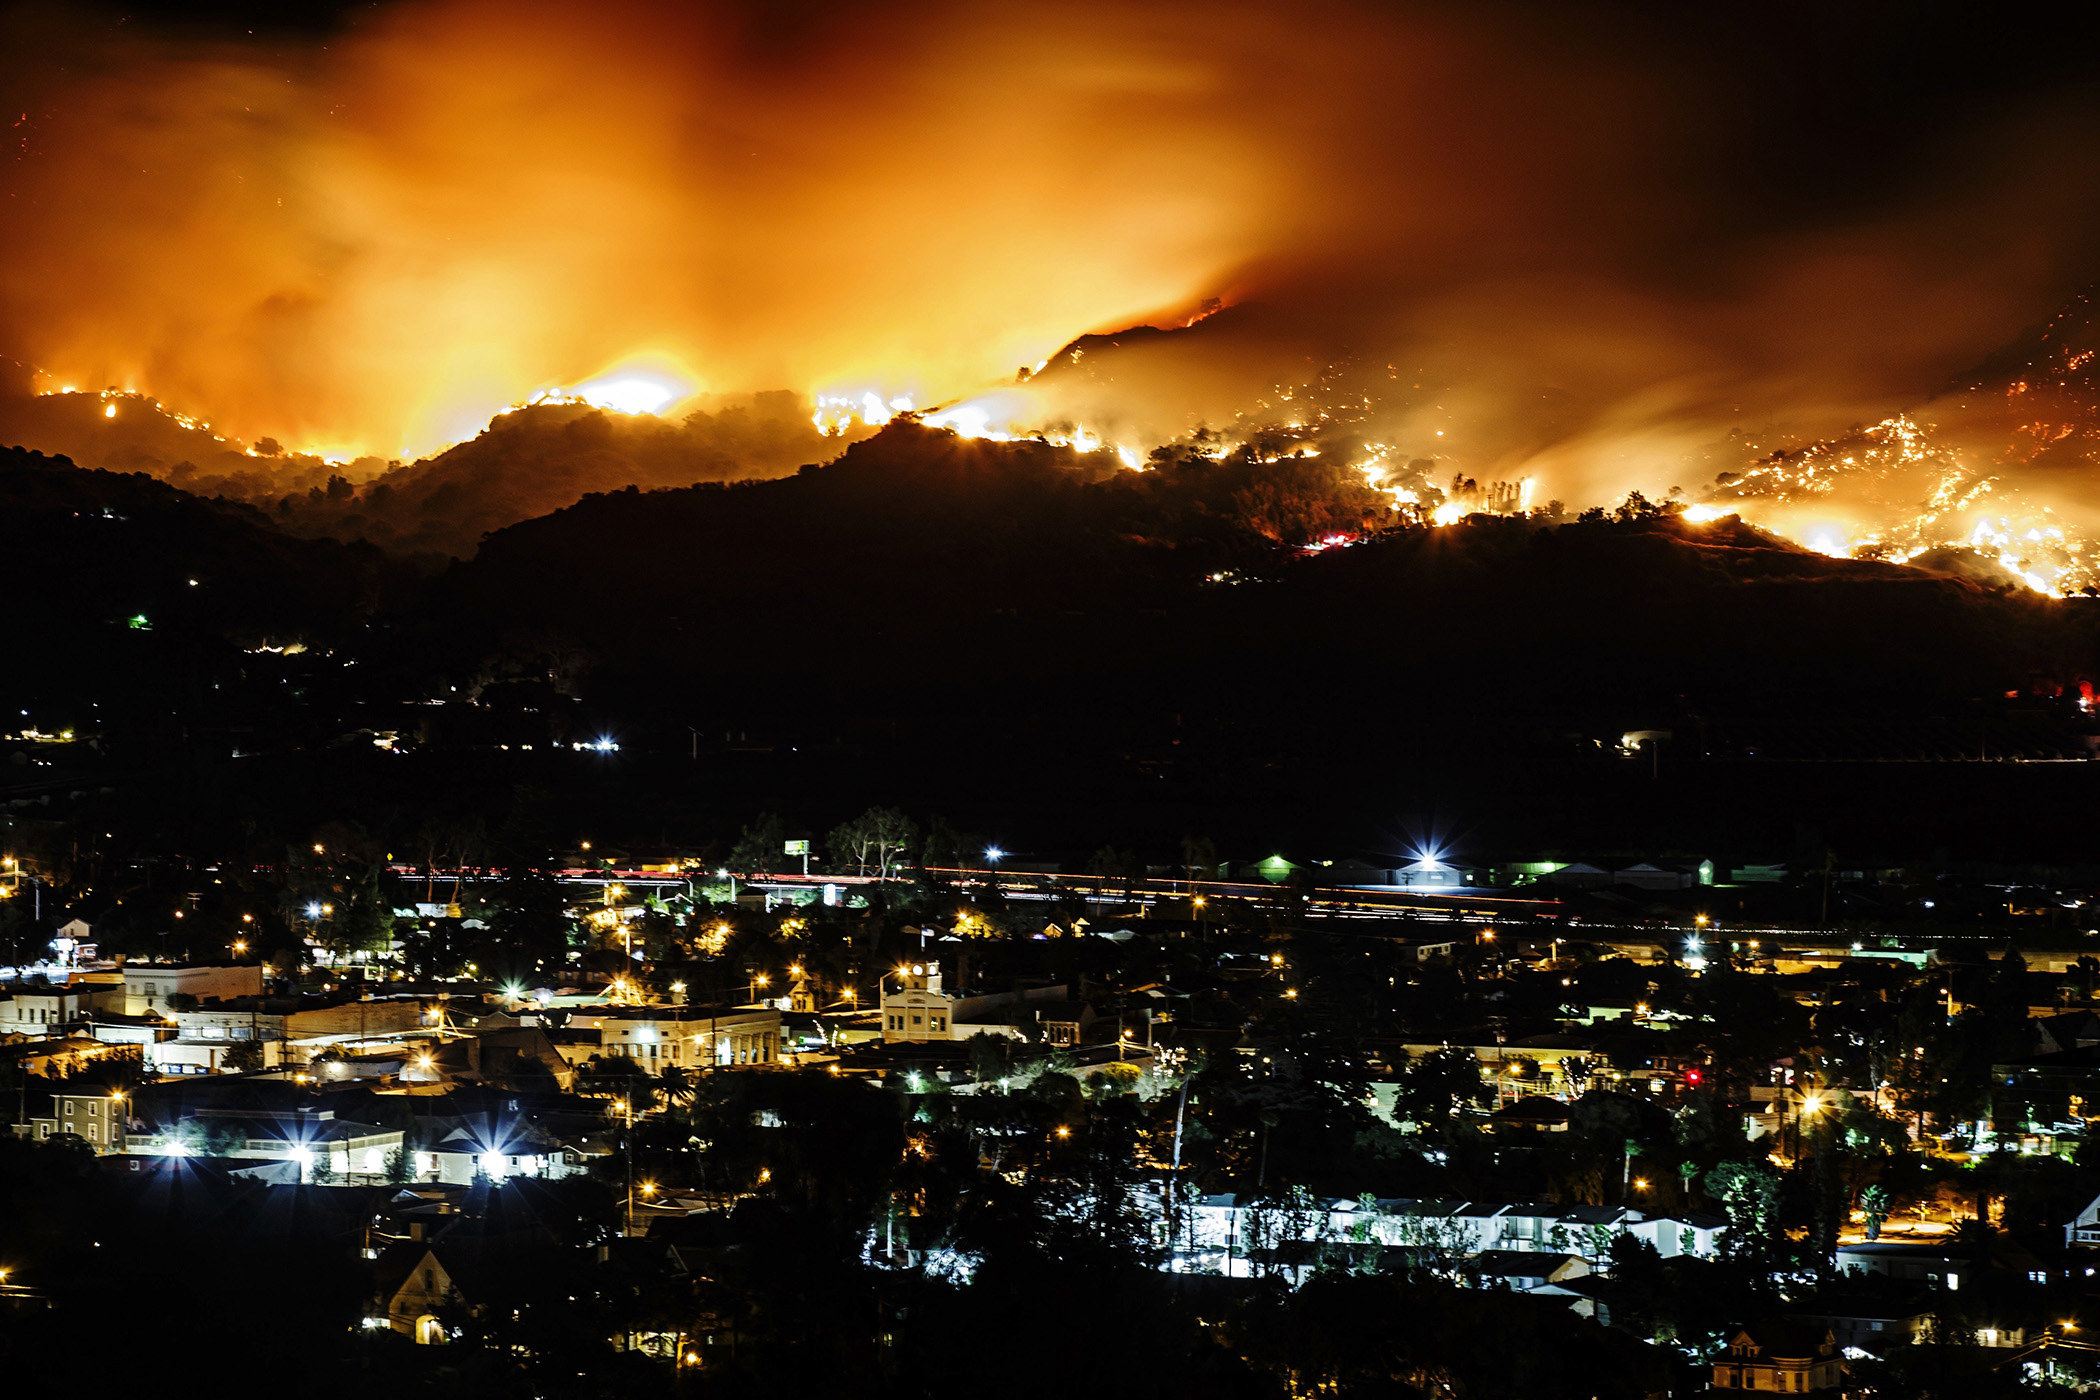 A city skyline at night is illuminated by wildfire flames